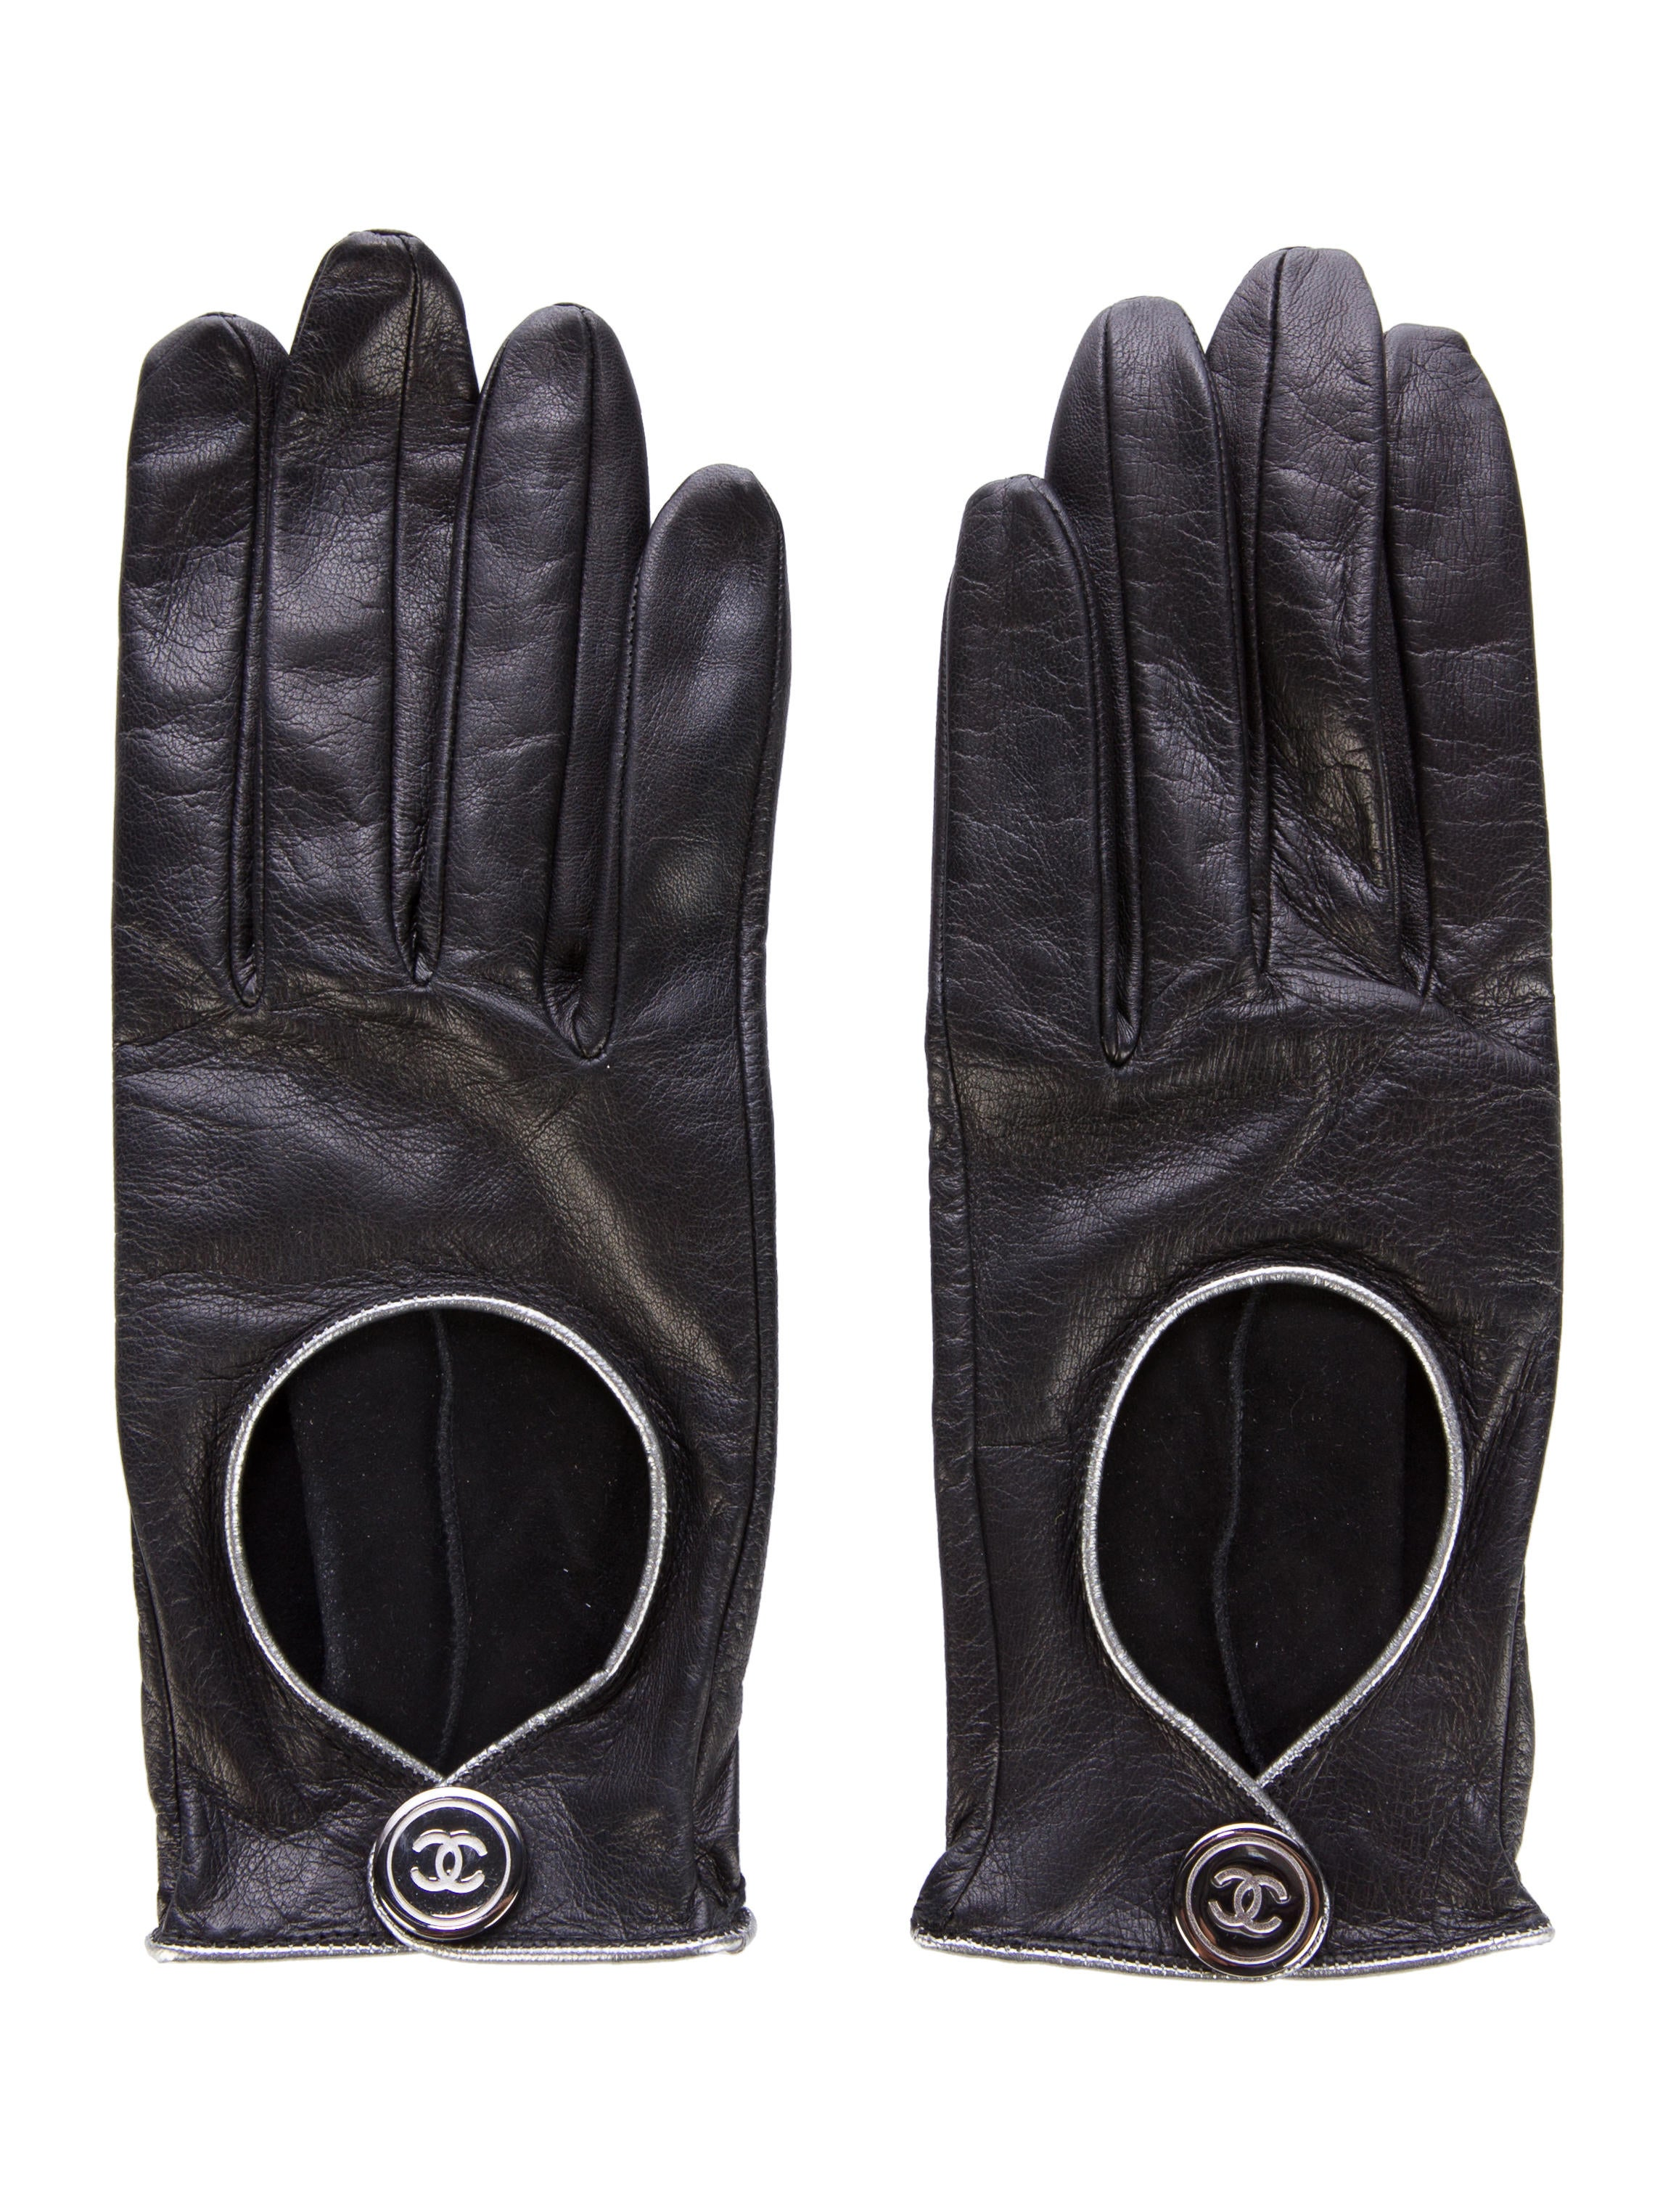 Chanel Lambskin Gloves - Accessories - CHA160635 | The ...